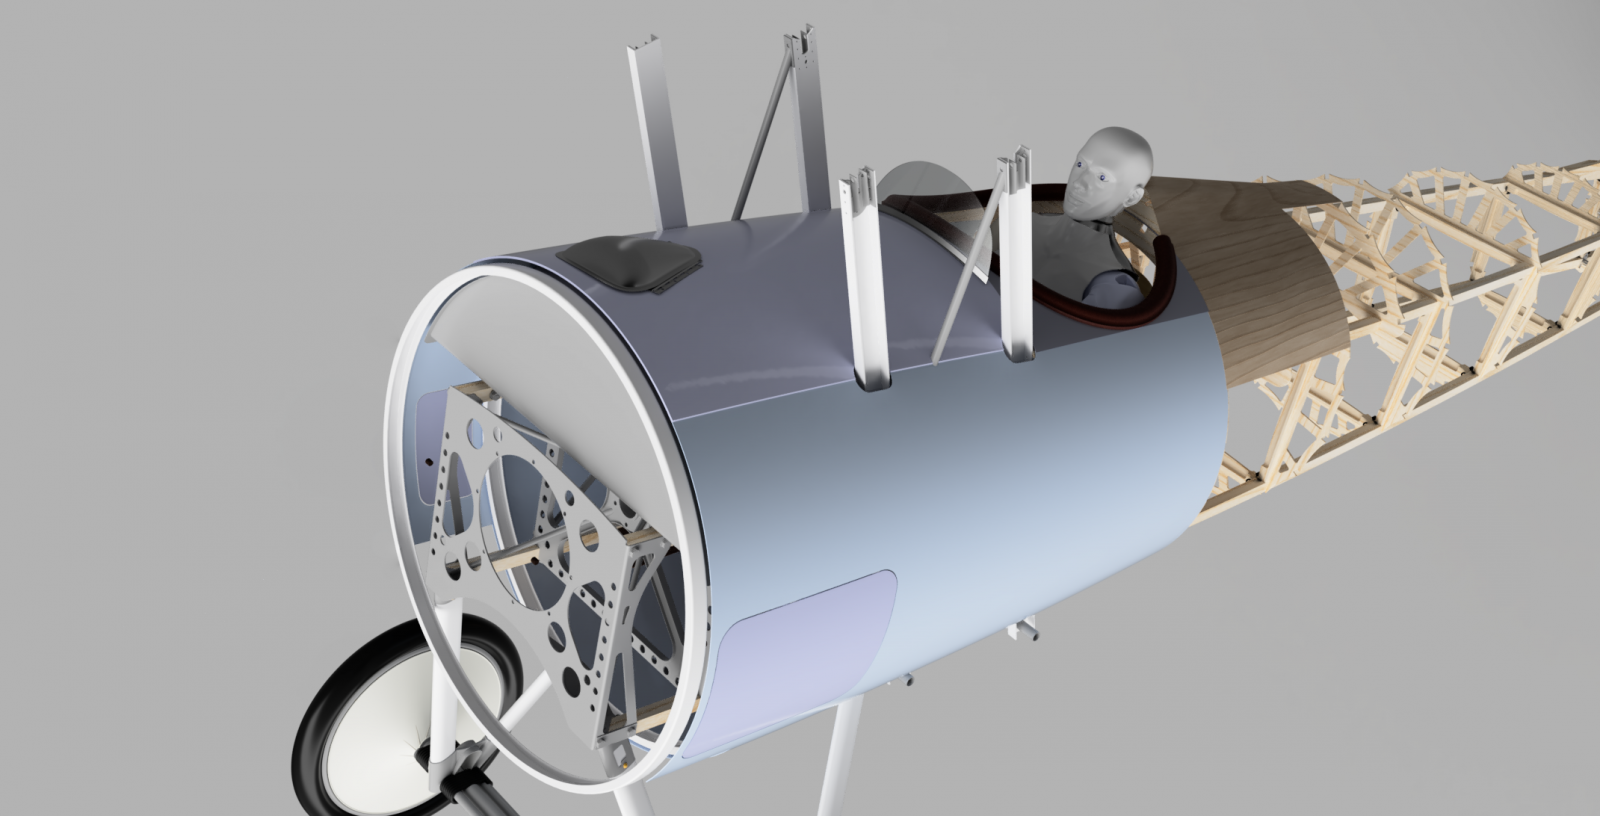 Nieuport_28_C1_fuse__assembly_1_2.5__v13_2020-Mar-14_04-16-25PM-000_CustomizedView4374802664_png.png